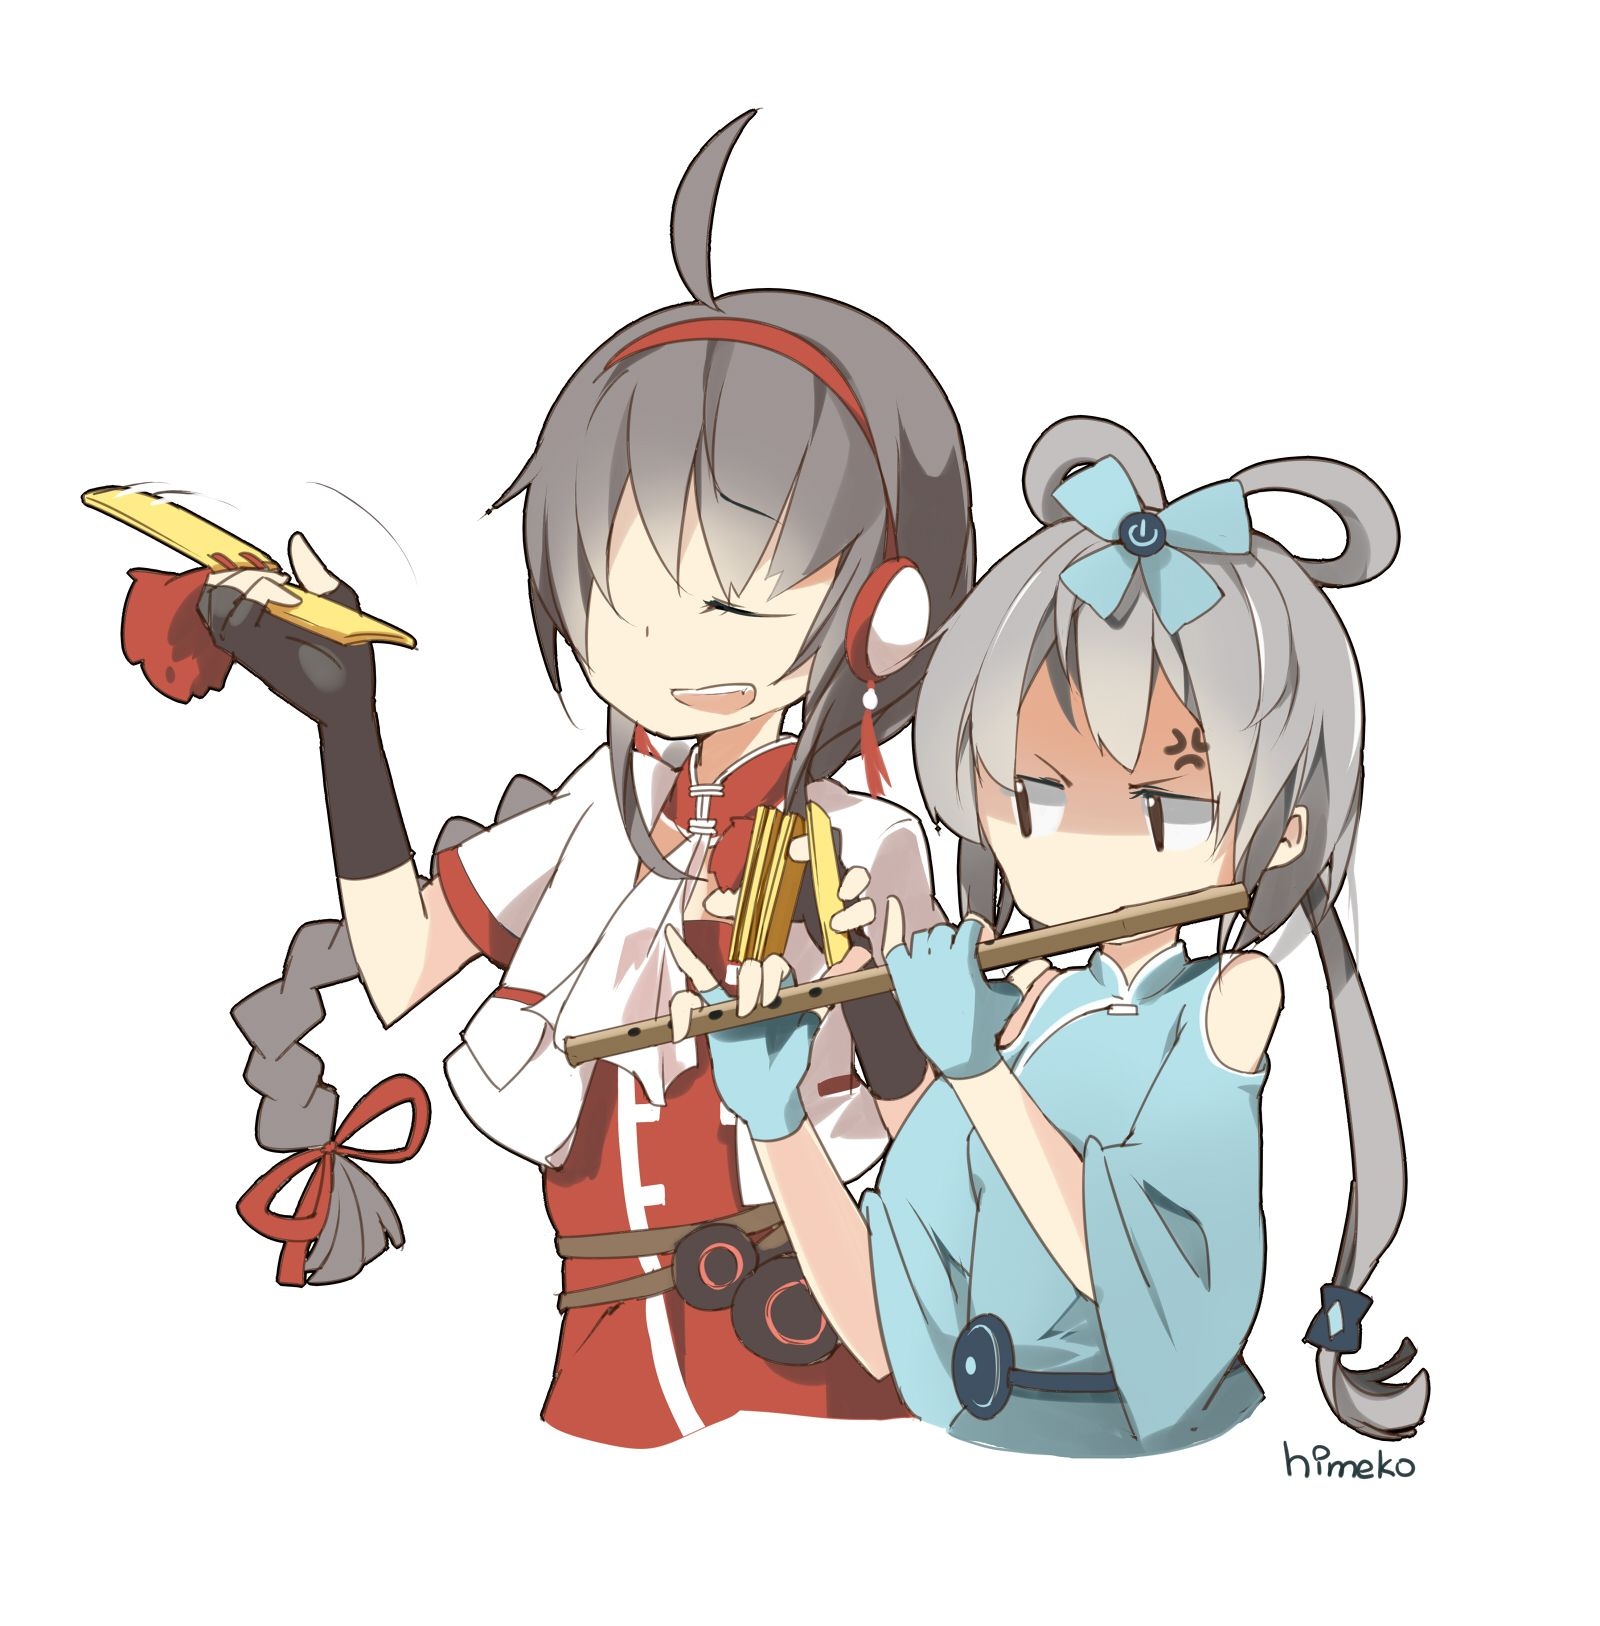 Pin by Juliana ♥ ♪♫☼ on Vocaloid China Vocaloid, Anime